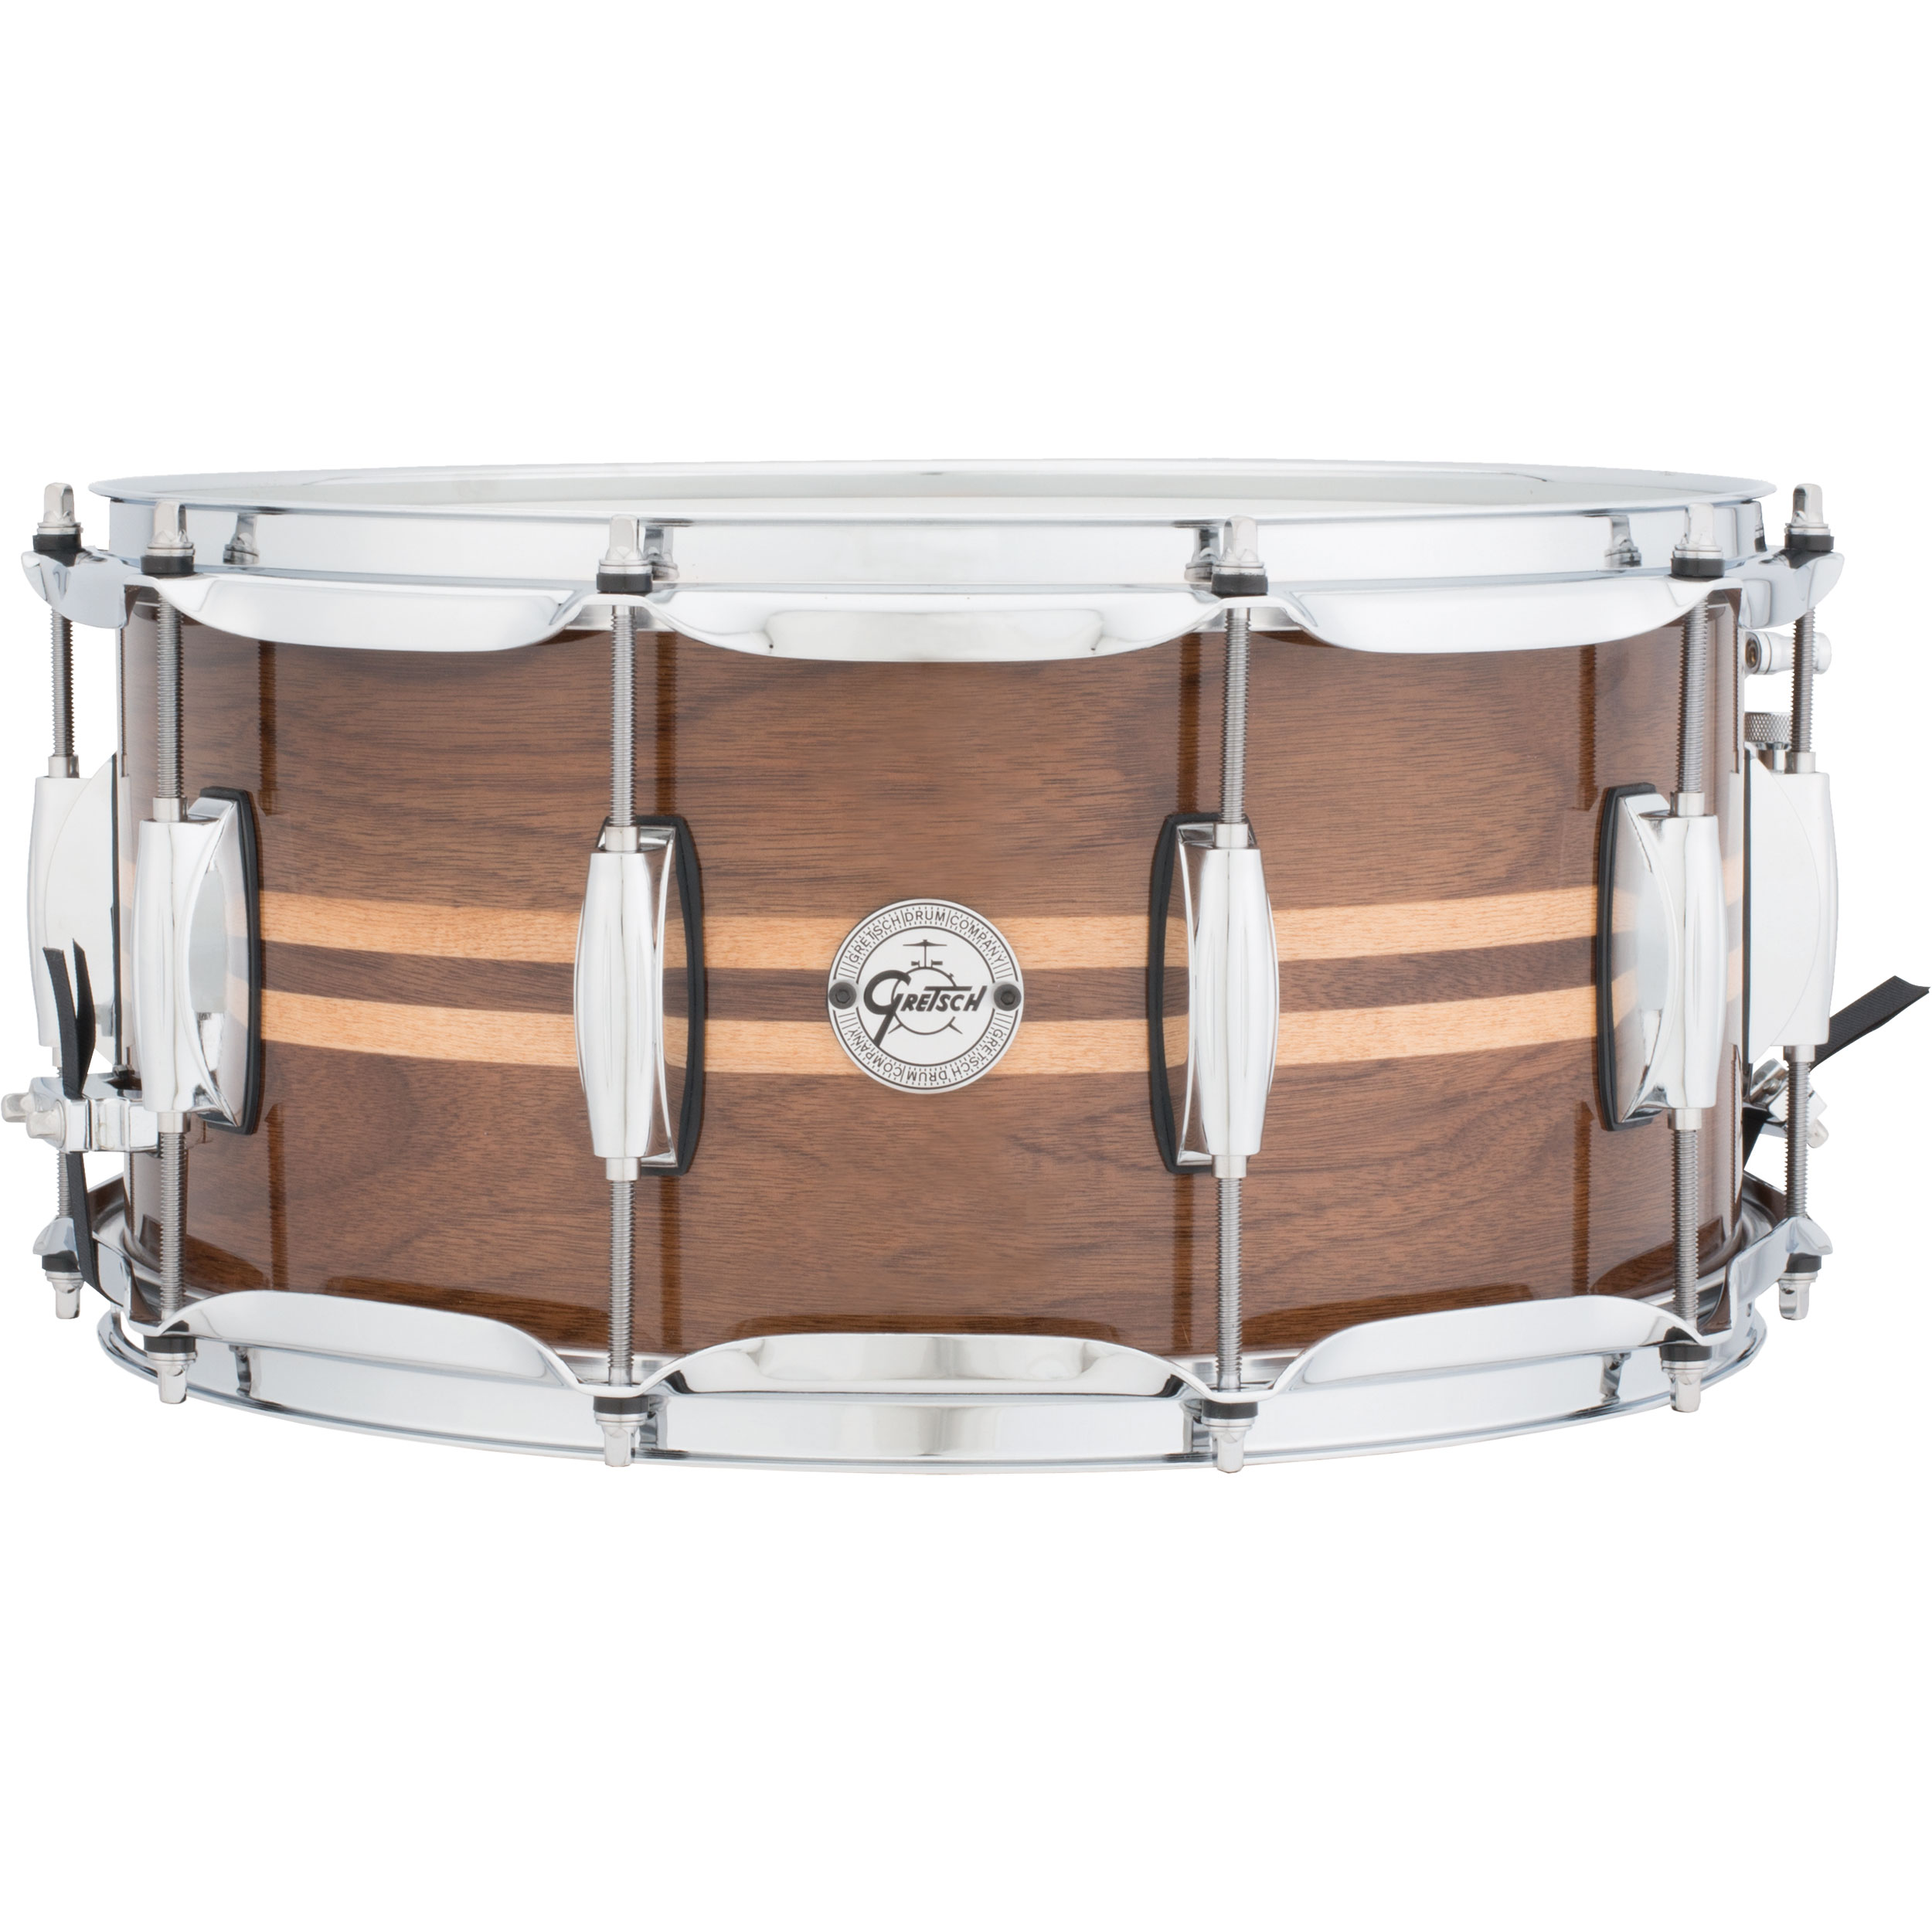 "Gretsch 6.5"" x 14"" Silver Series Walnut Snare Drum with Maple Inlays"